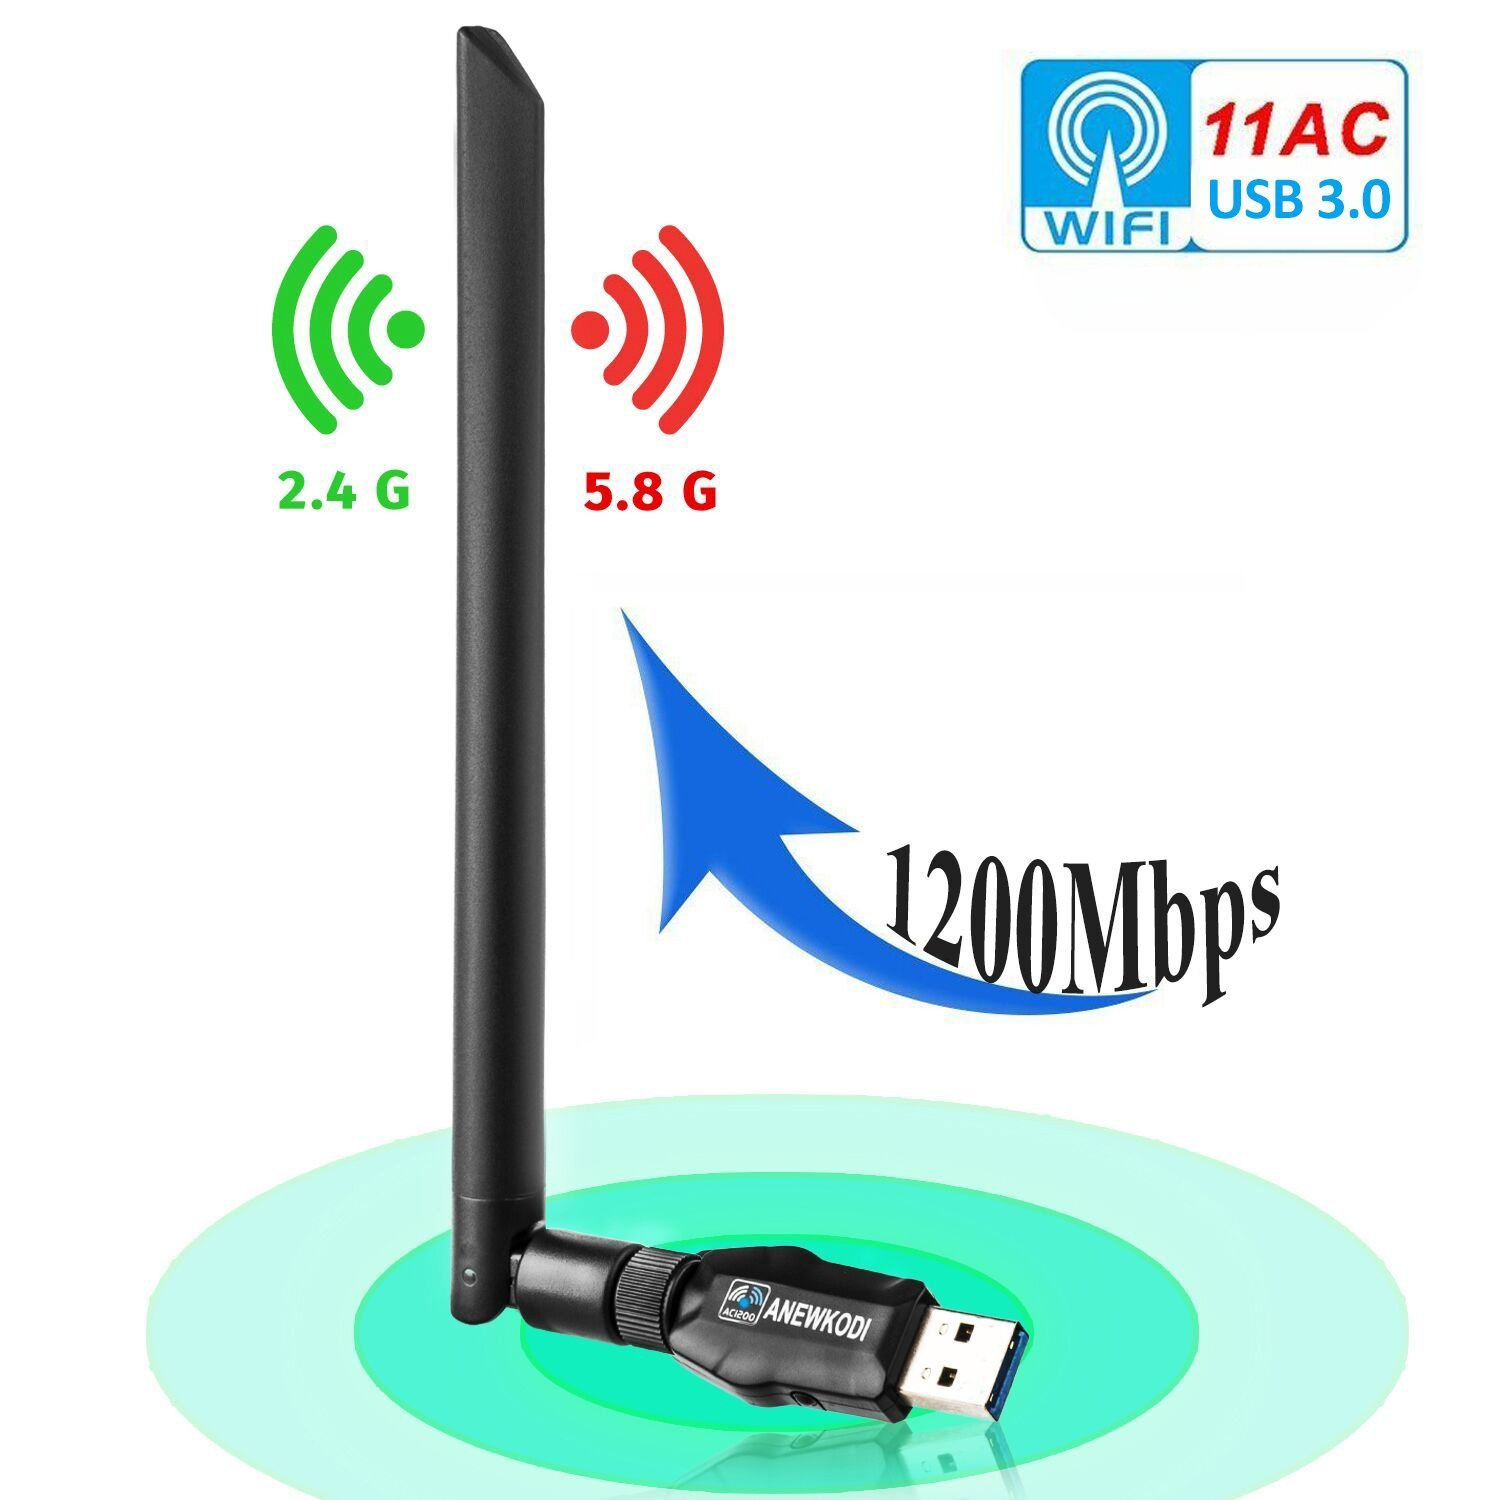 ANEWKODI 1200Mbps USB WiFi Adapter USB Wireless Adapter USB 3.0 Dual Band 2.4GHz/5.8GHz 867Mbps 802.11ac/b/g/n Wireless Adapter for Desktop/Laptop/PC, Support Windows 10/8.1/8/7/XP, Mac OS